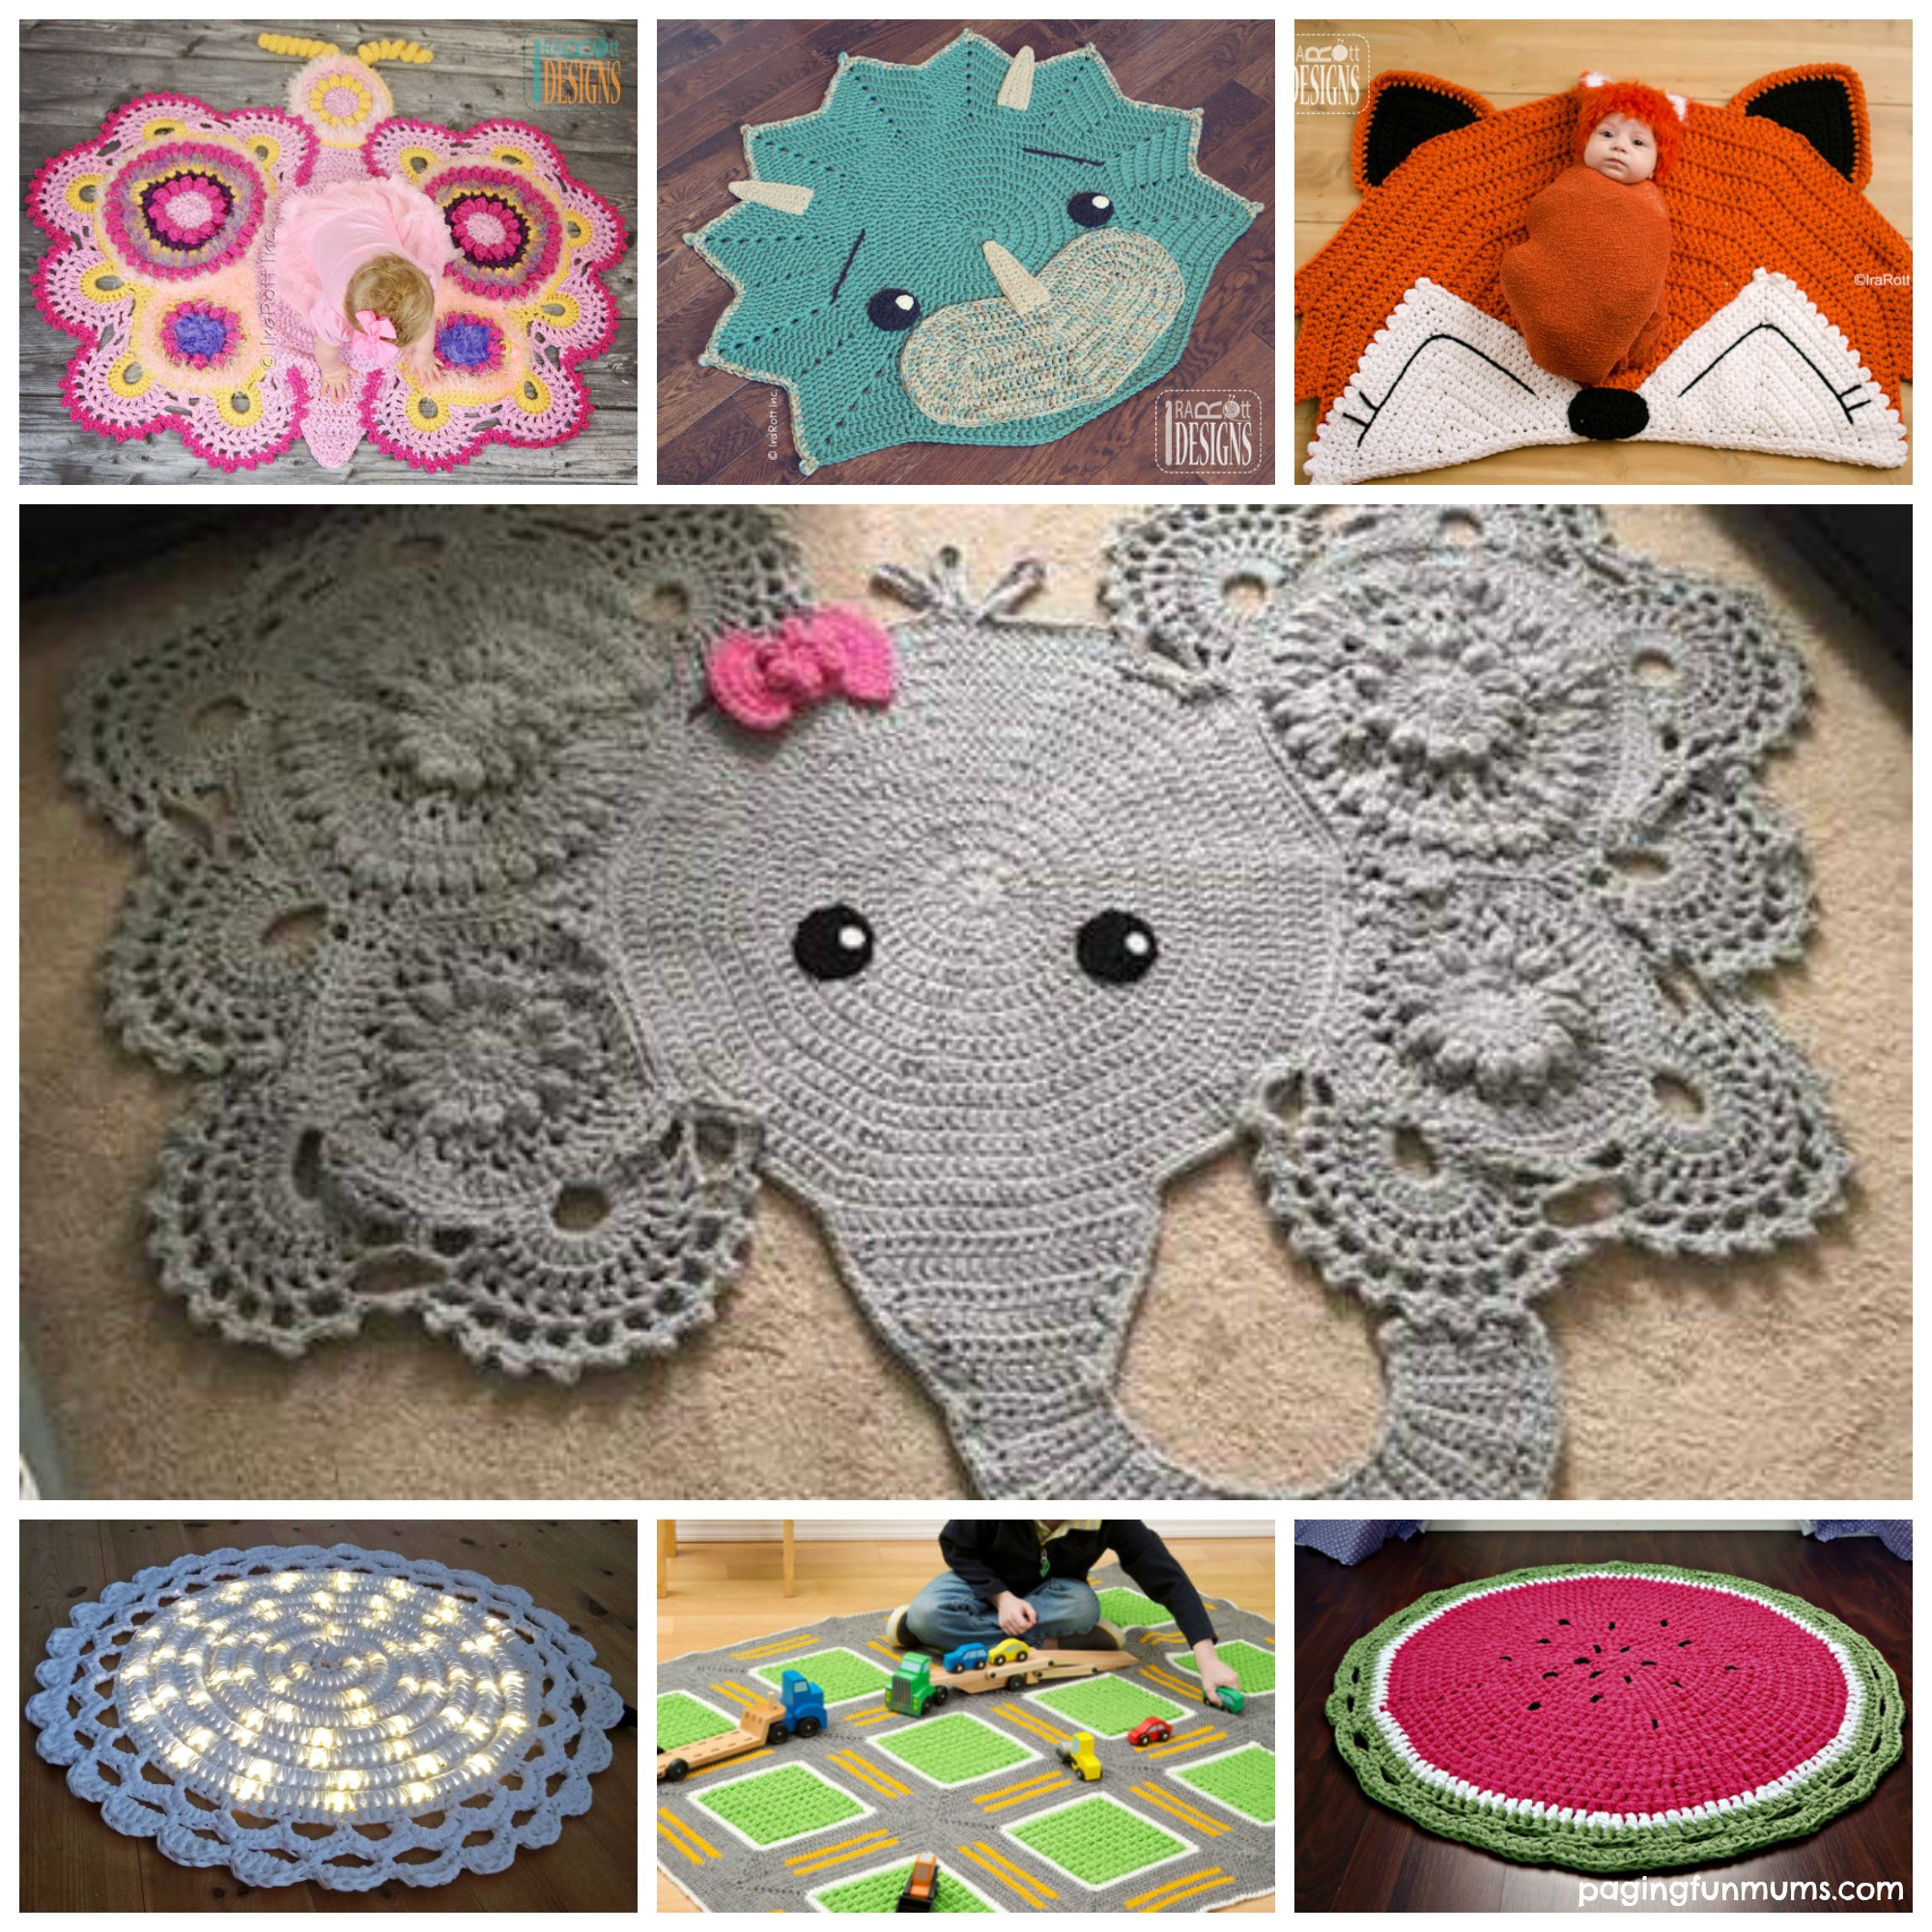 Clever Crochet Throw Rugs Paging Fun Mums